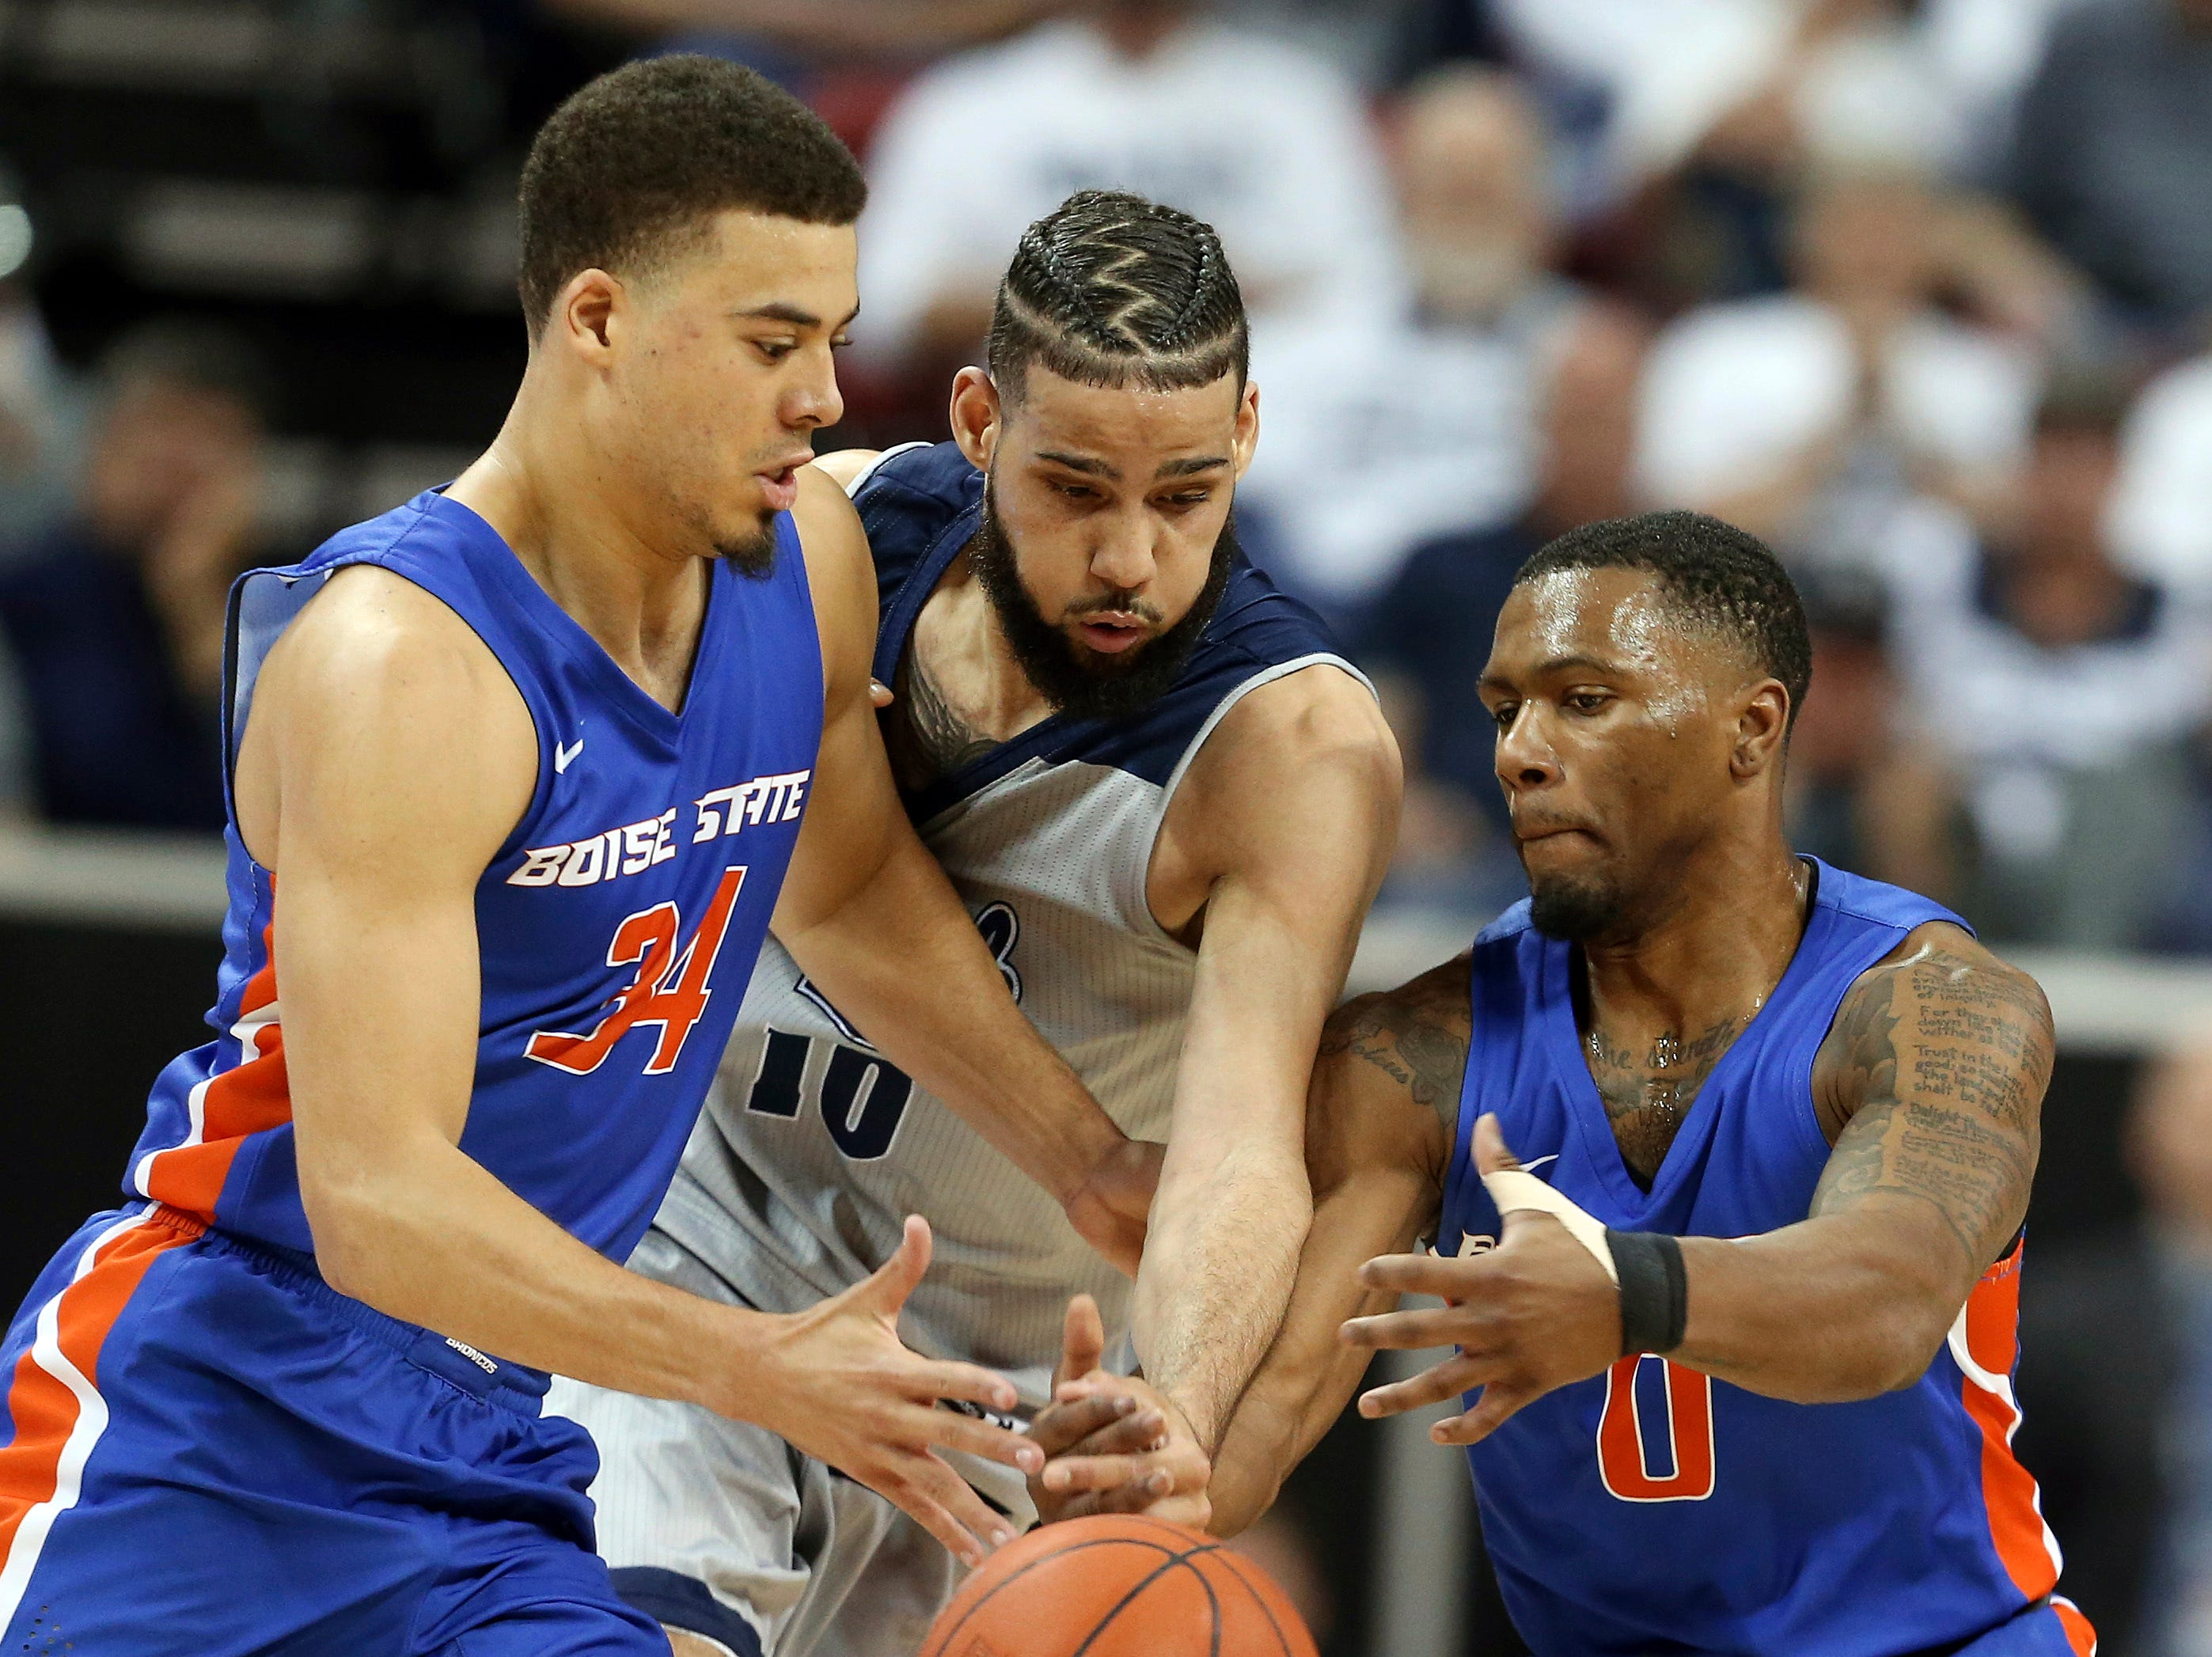 Boise State's Alex Hobbs (34) and Marcus Dickinson (0) reach for a loose ball with Nevada's Caleb Martin (10) during the first half of an NCAA college basketball game in the Mountain West Conference men's tournament Thursday, March 14, 2019, in Las Vegas. (AP Photo/Isaac Brekken)